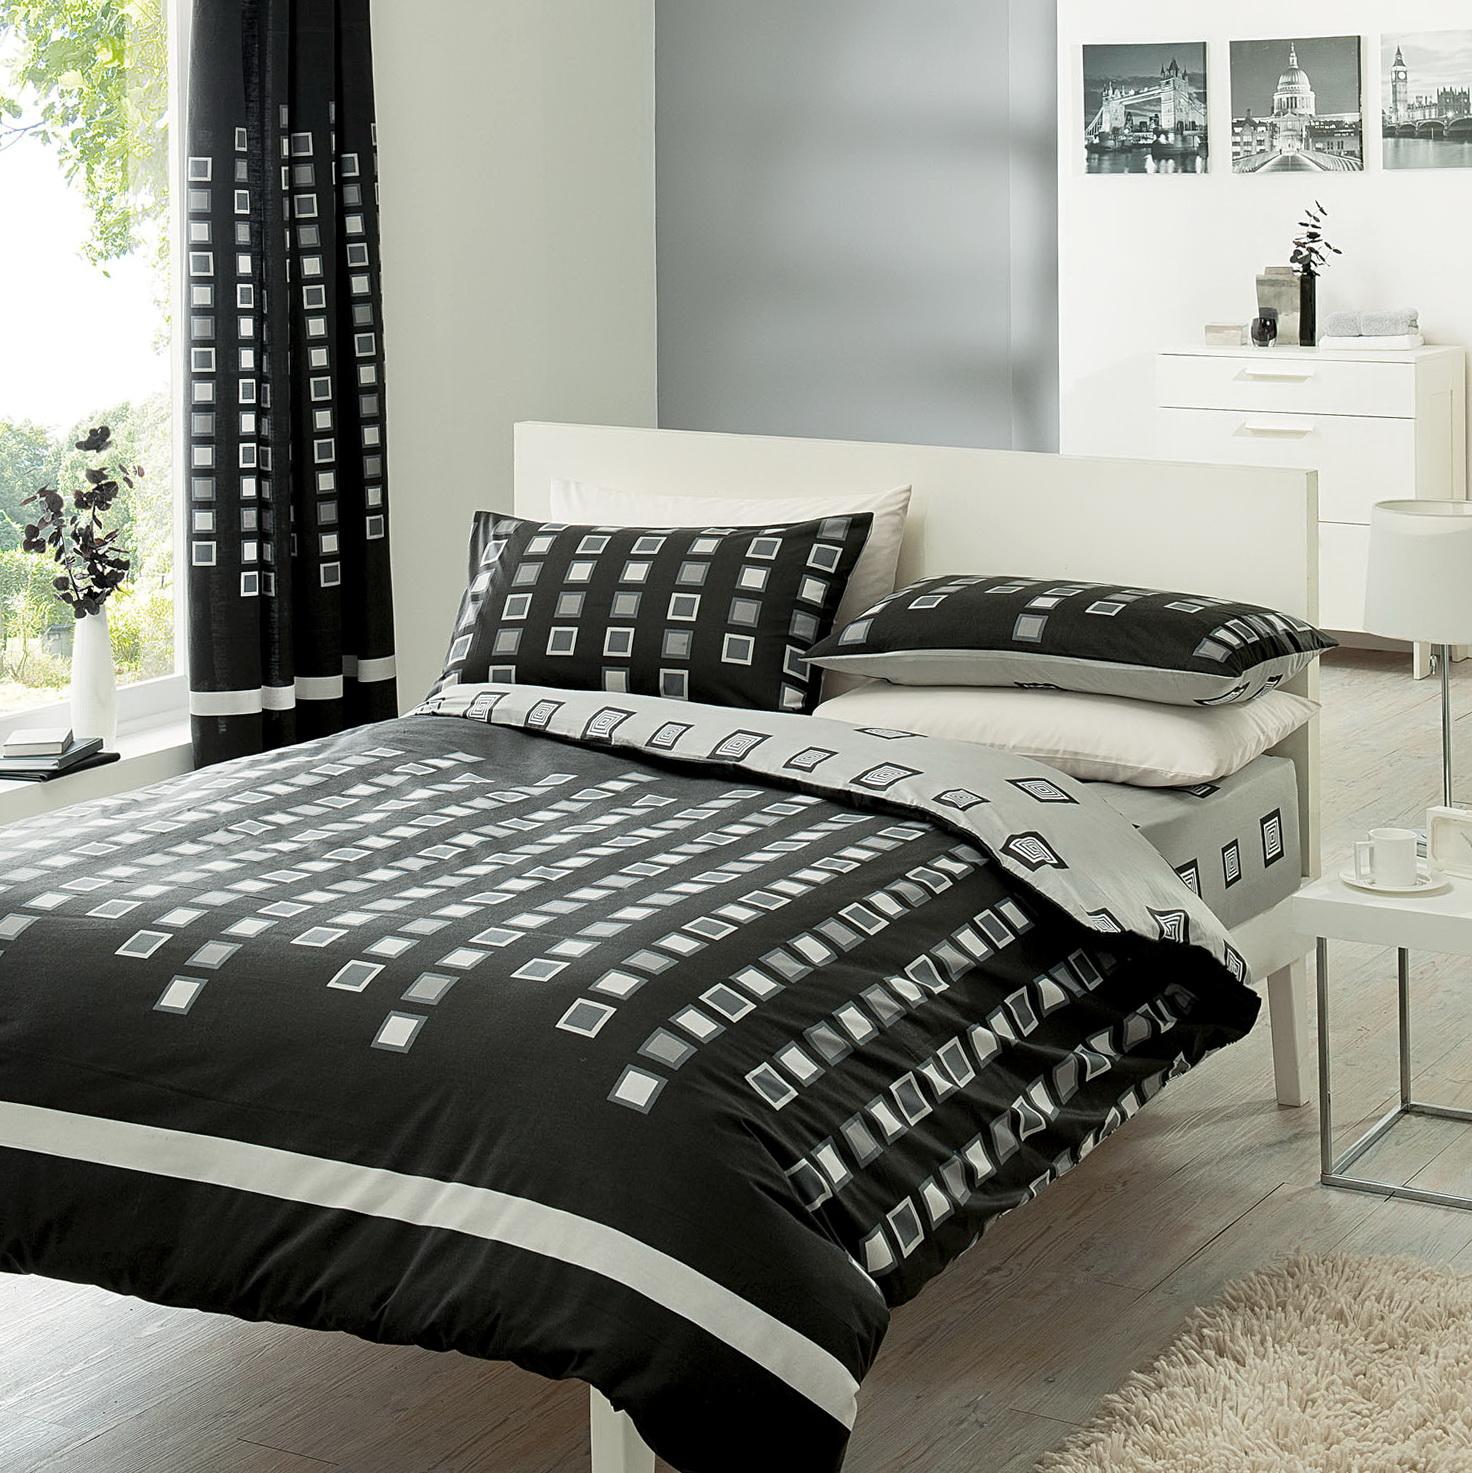 Comforter Sets With Curtains To Match Home Design Ideas